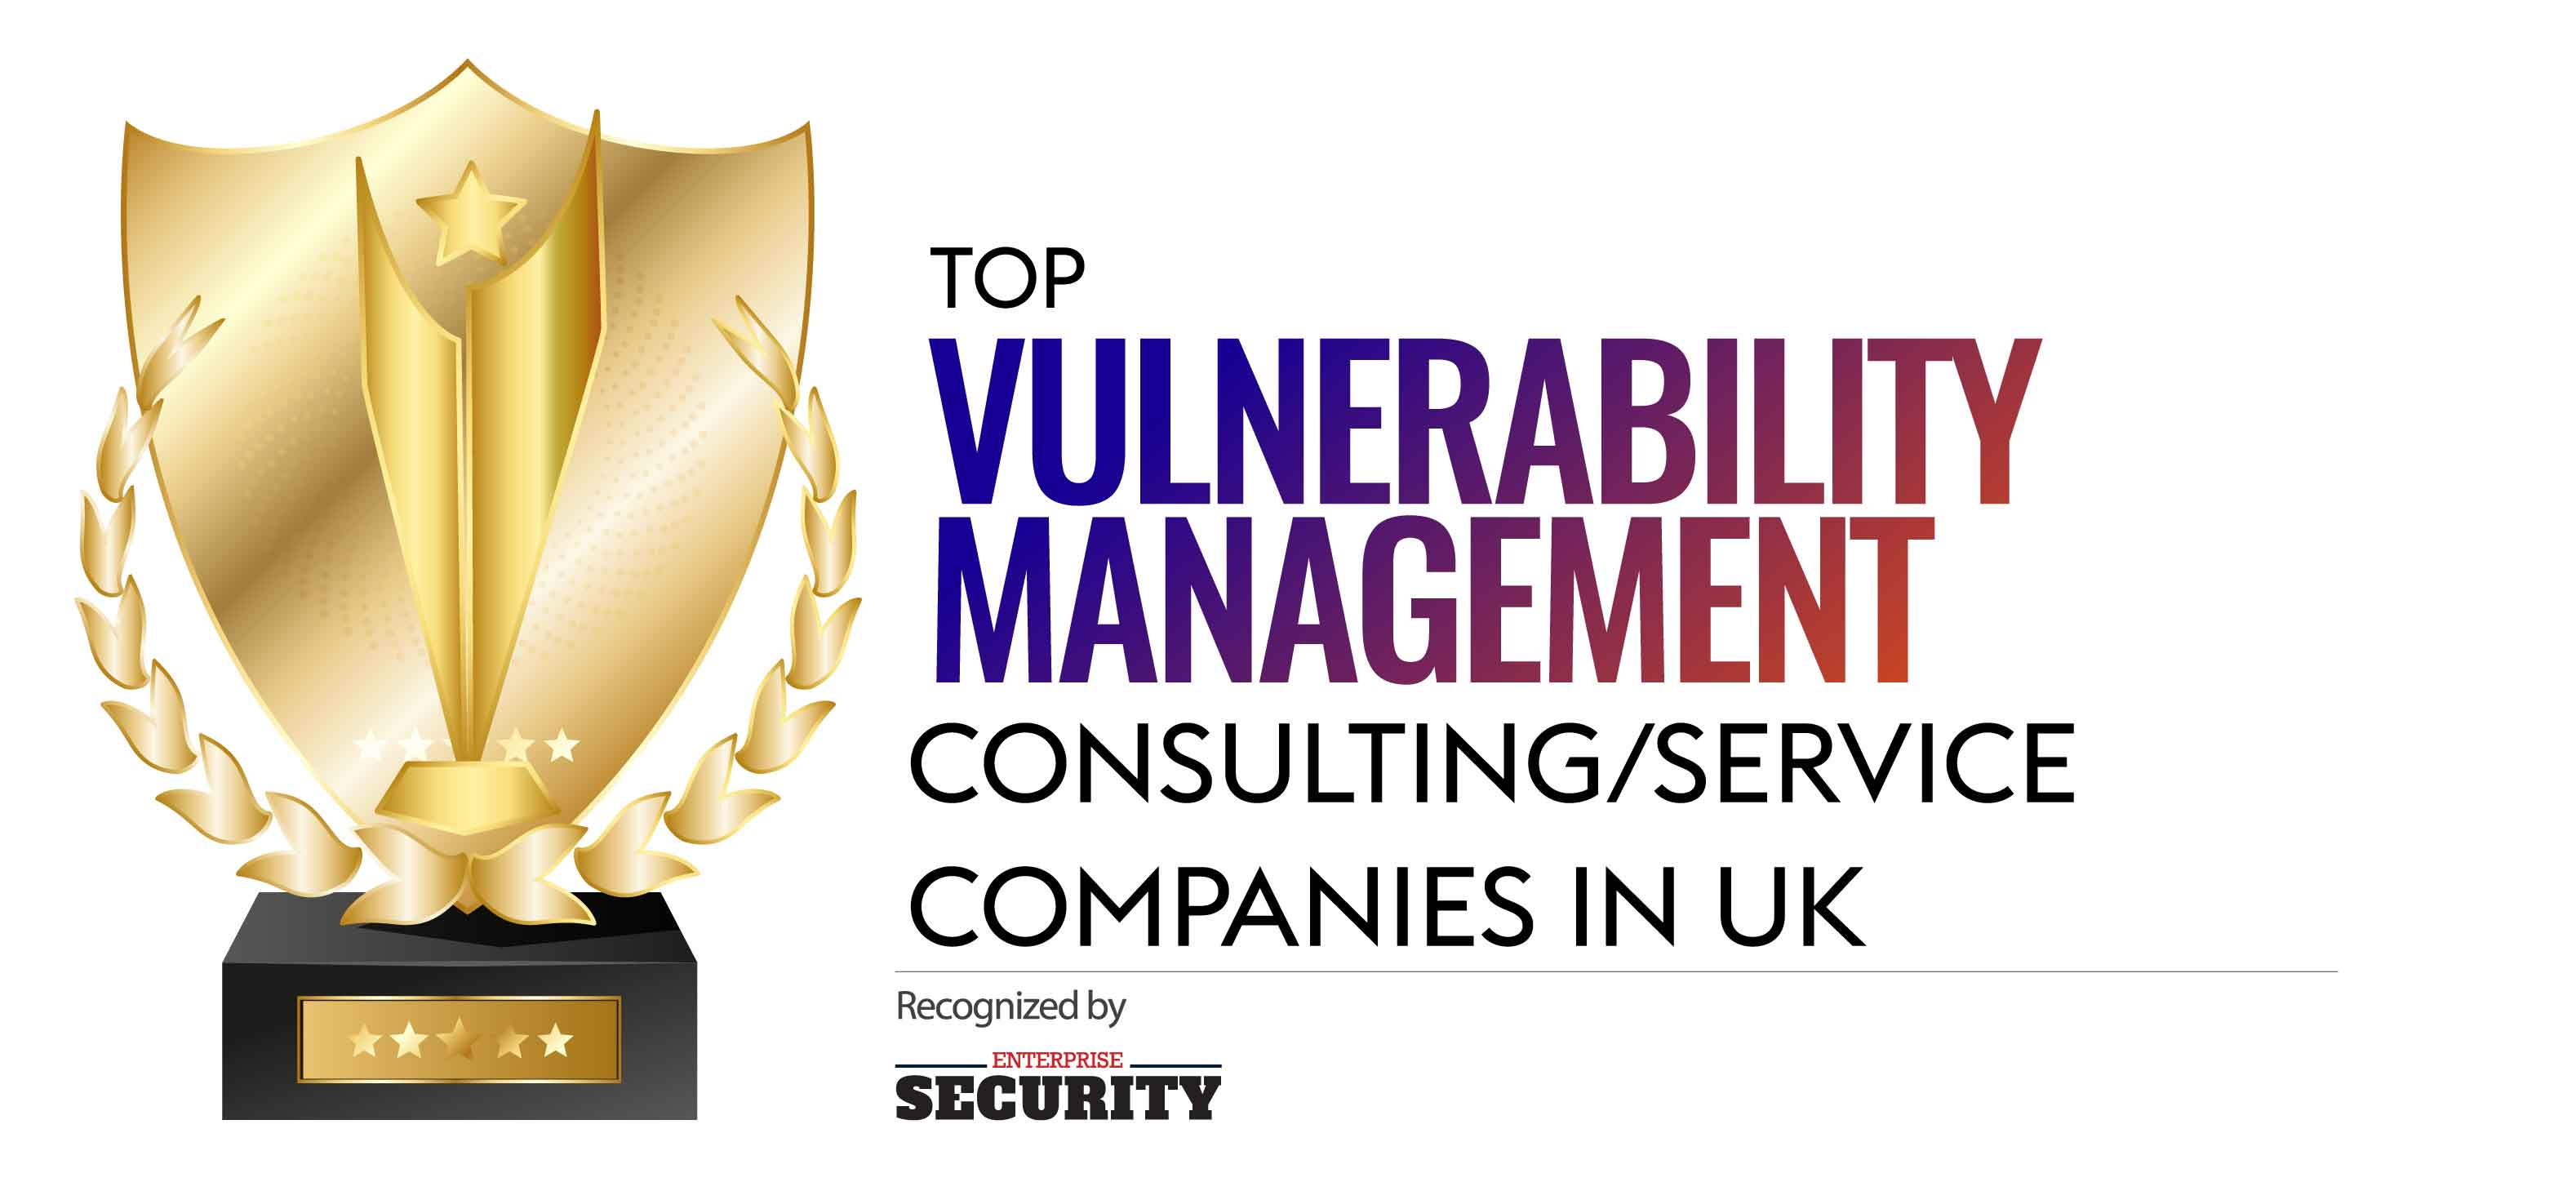 Top Vulnerability Management Consulting/Service Companies in UK